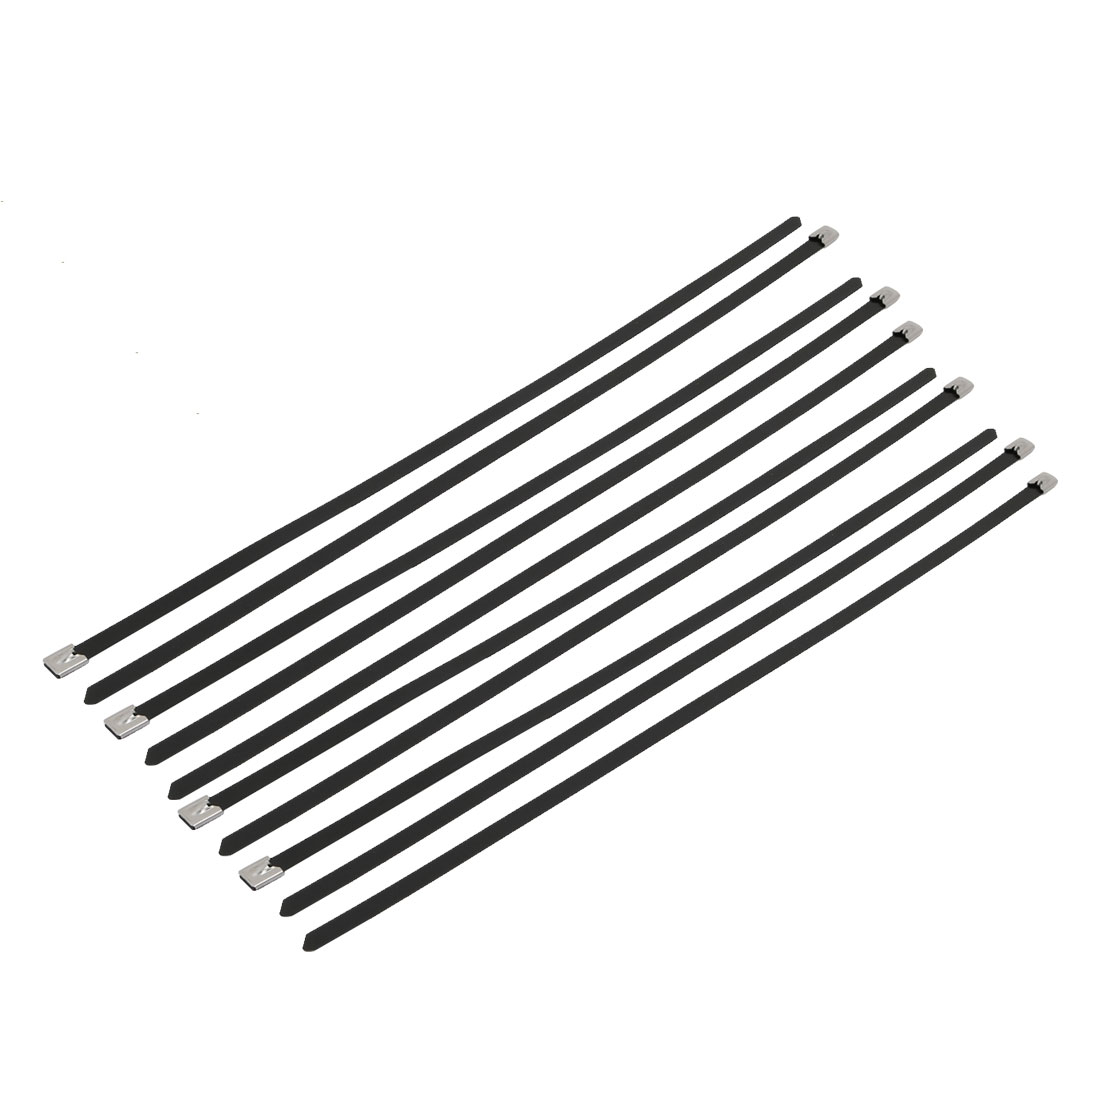 10pcs 10mm Width 500mm Length Stainless Steel Cable Tie Wire Strap Black